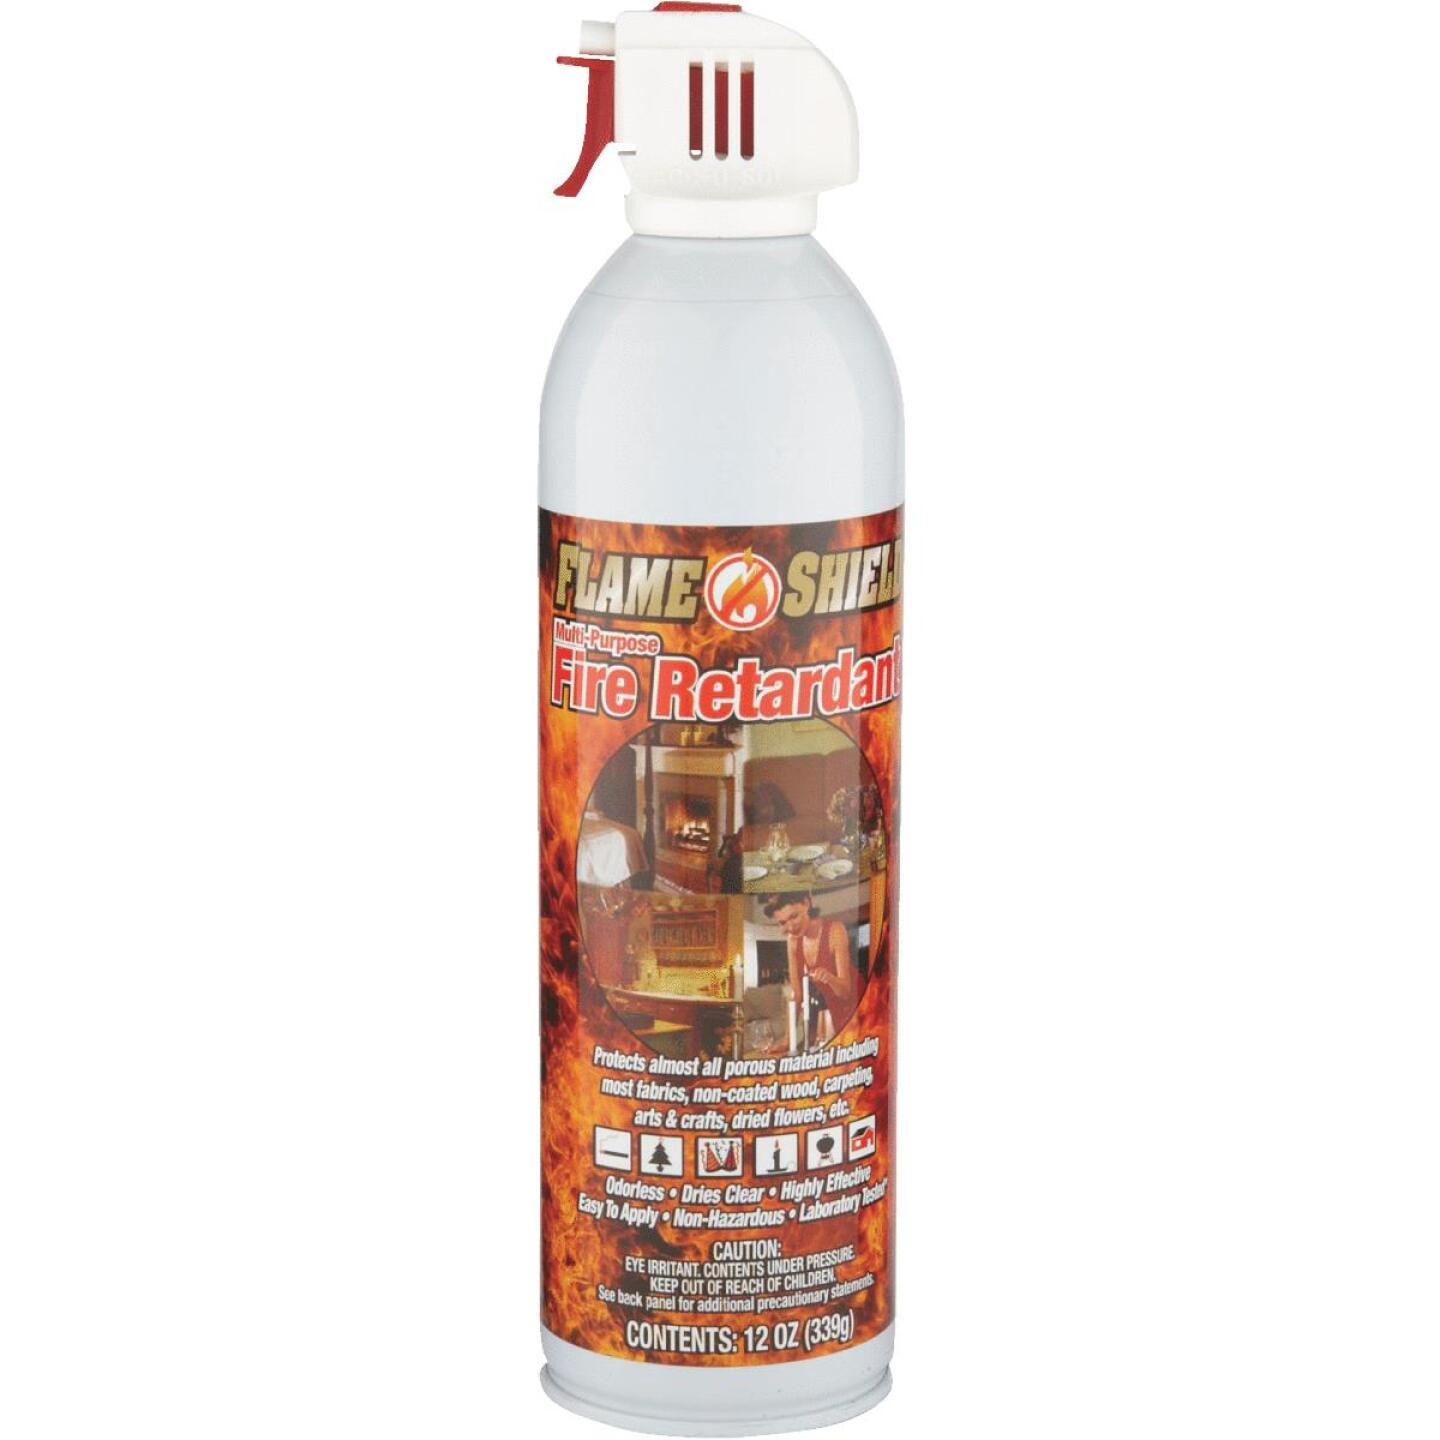 Flame-Shield 12 Oz. Aerosol Fire Retardant Spray Image 1